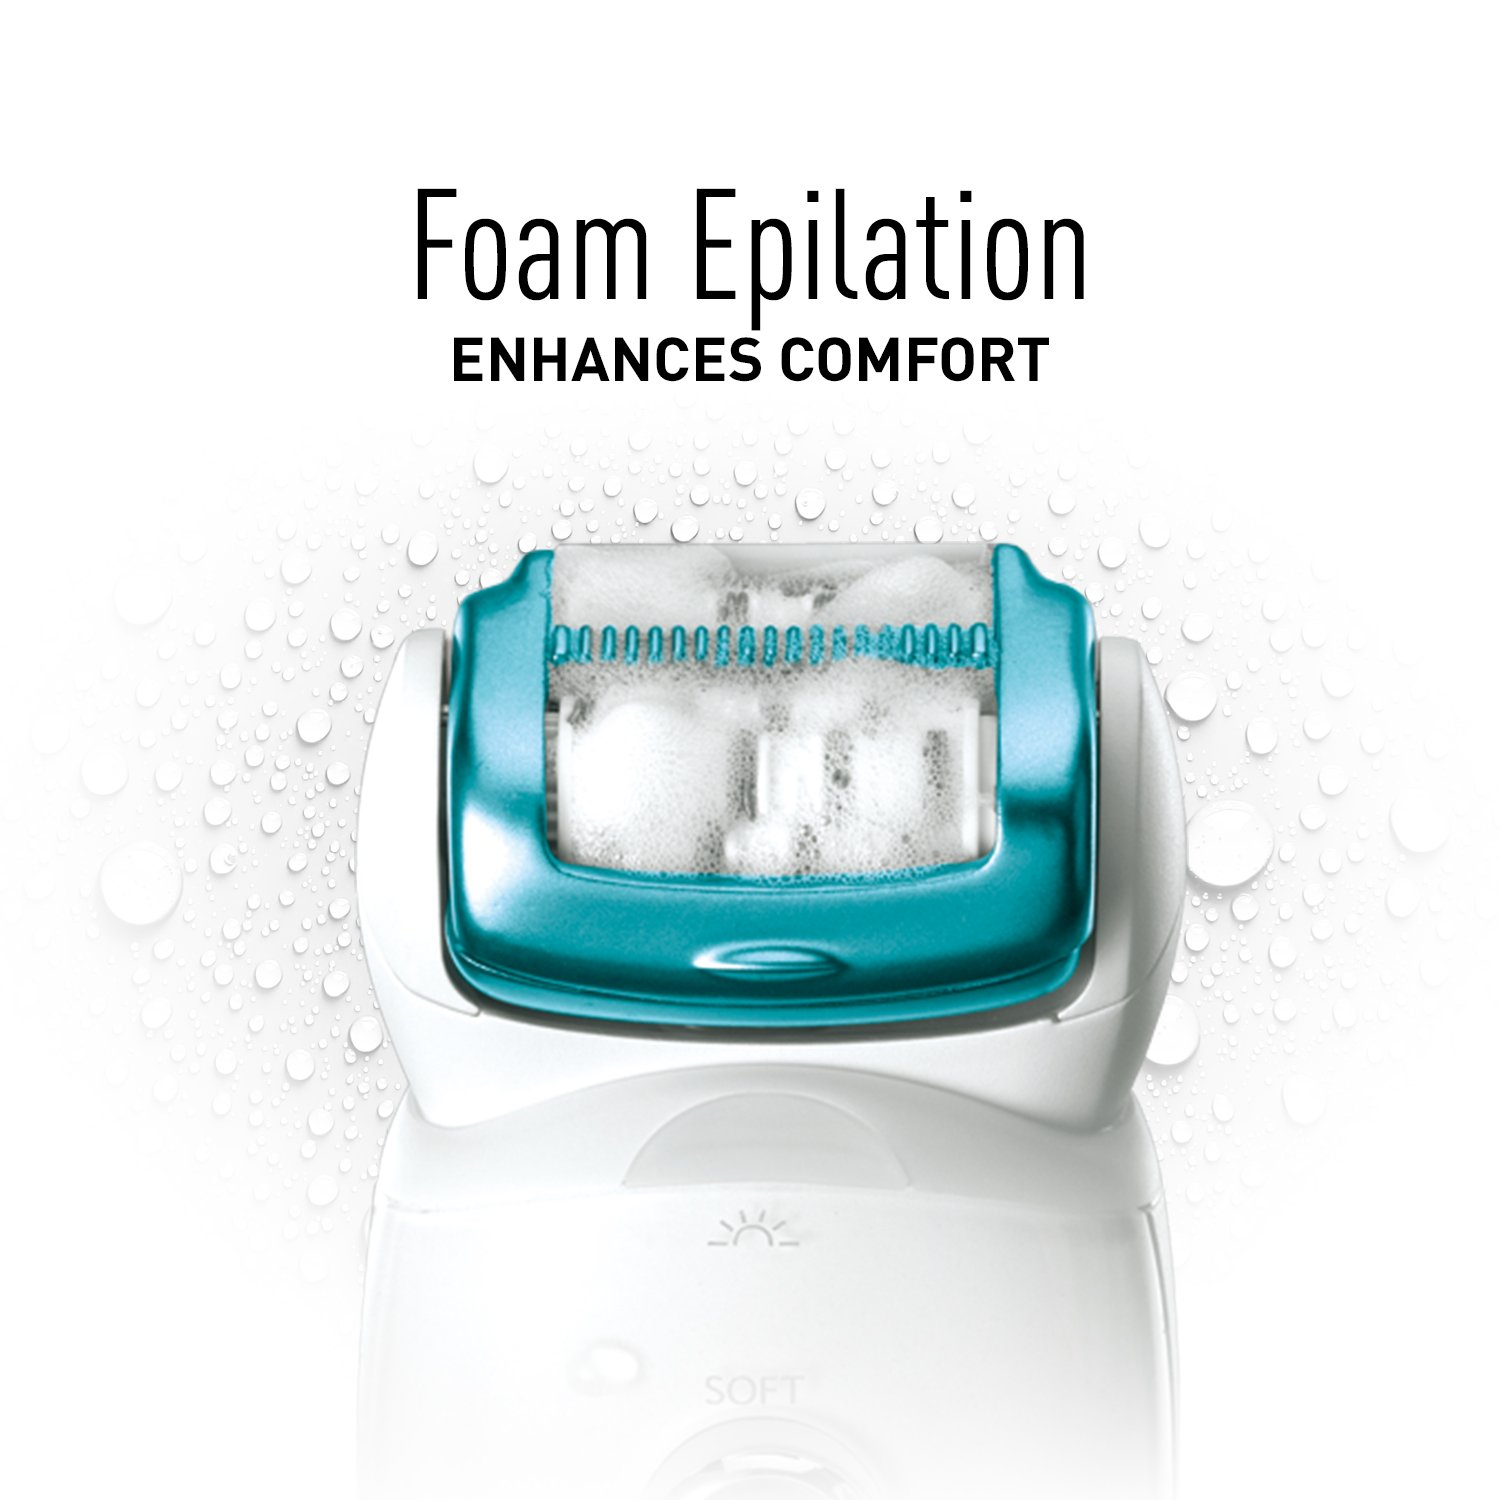 Panasonic ES-ED70-G Multi-Functional Wet/Dry Shaver and Epilator for Women, with Five Hair Removal Attachments and Travel Pouch by Panasonic (Image #6)